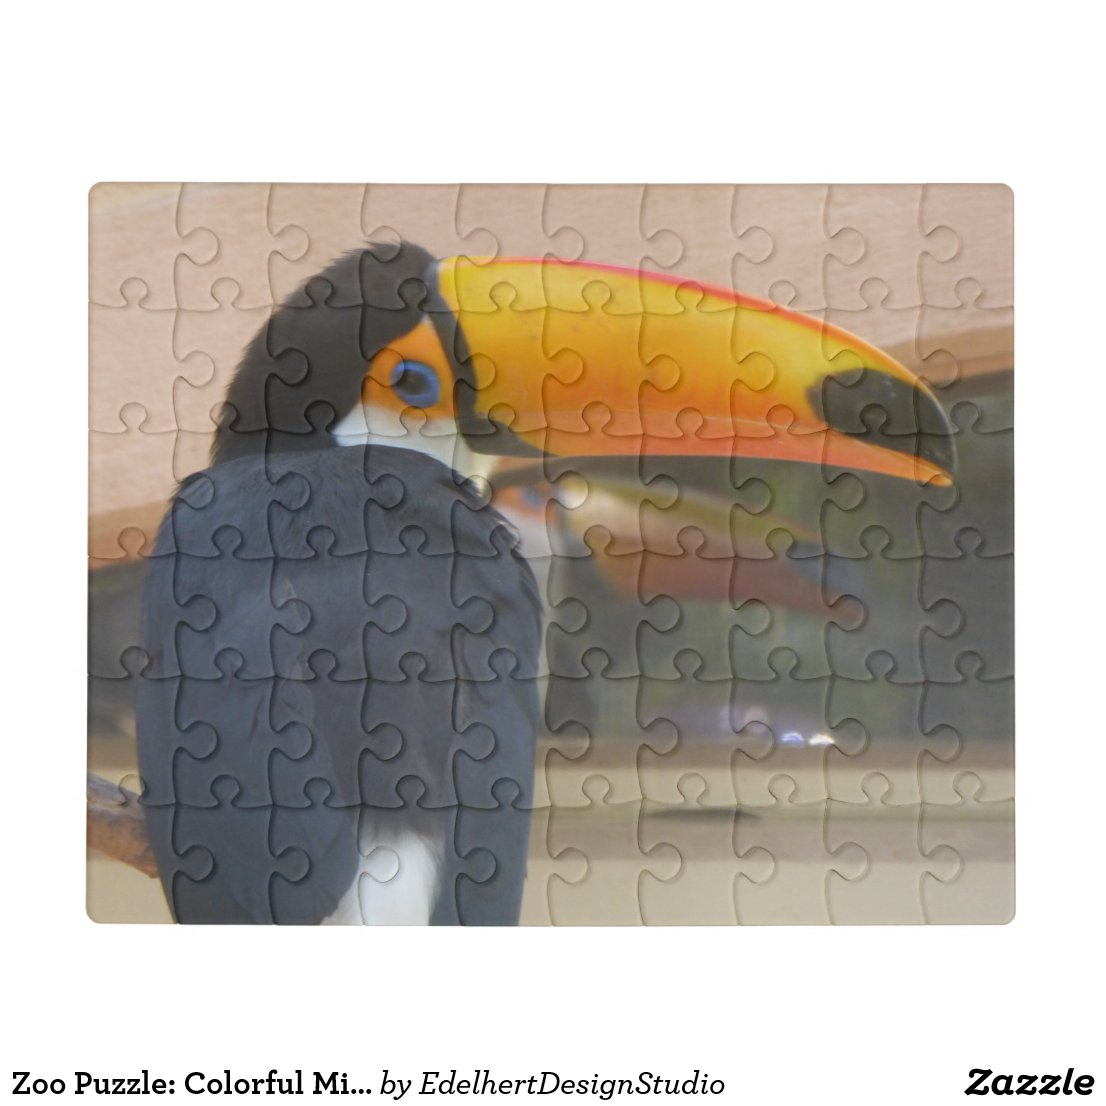 Zoo Puzzle: Colorful Mirrored Toucan Face Jigsaw Puzzle